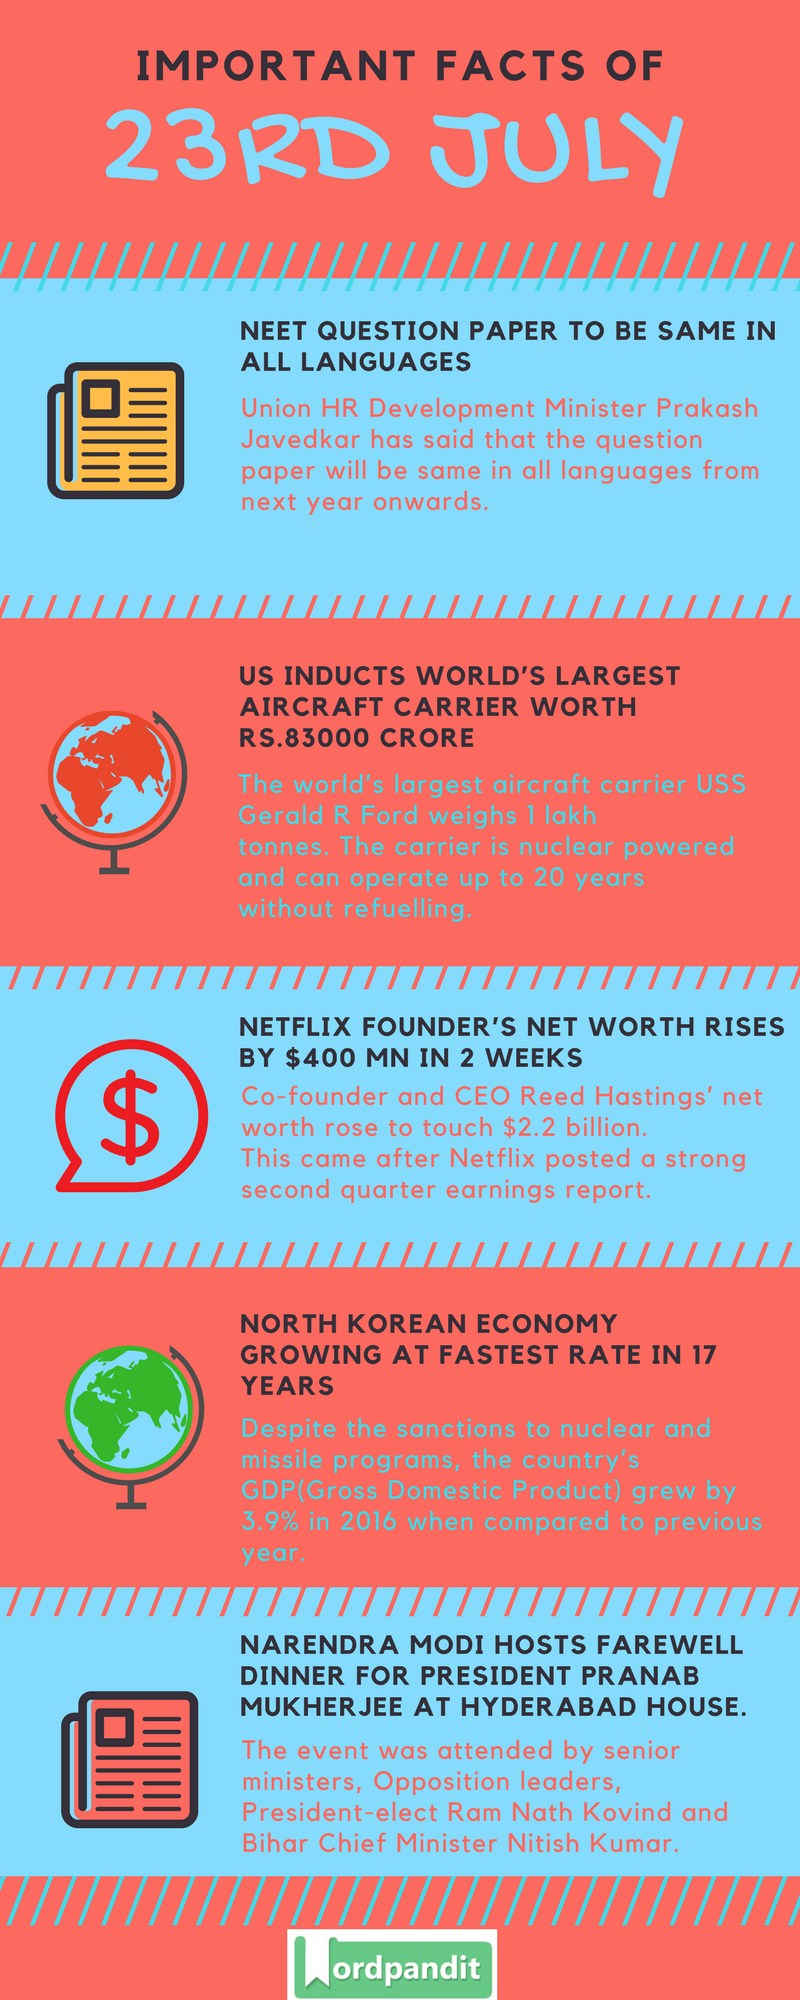 Daily-Current-Affairs-23-july-2017-Current-Affairs-Quiz-july-22-2017-Current-Affairs-Infographic